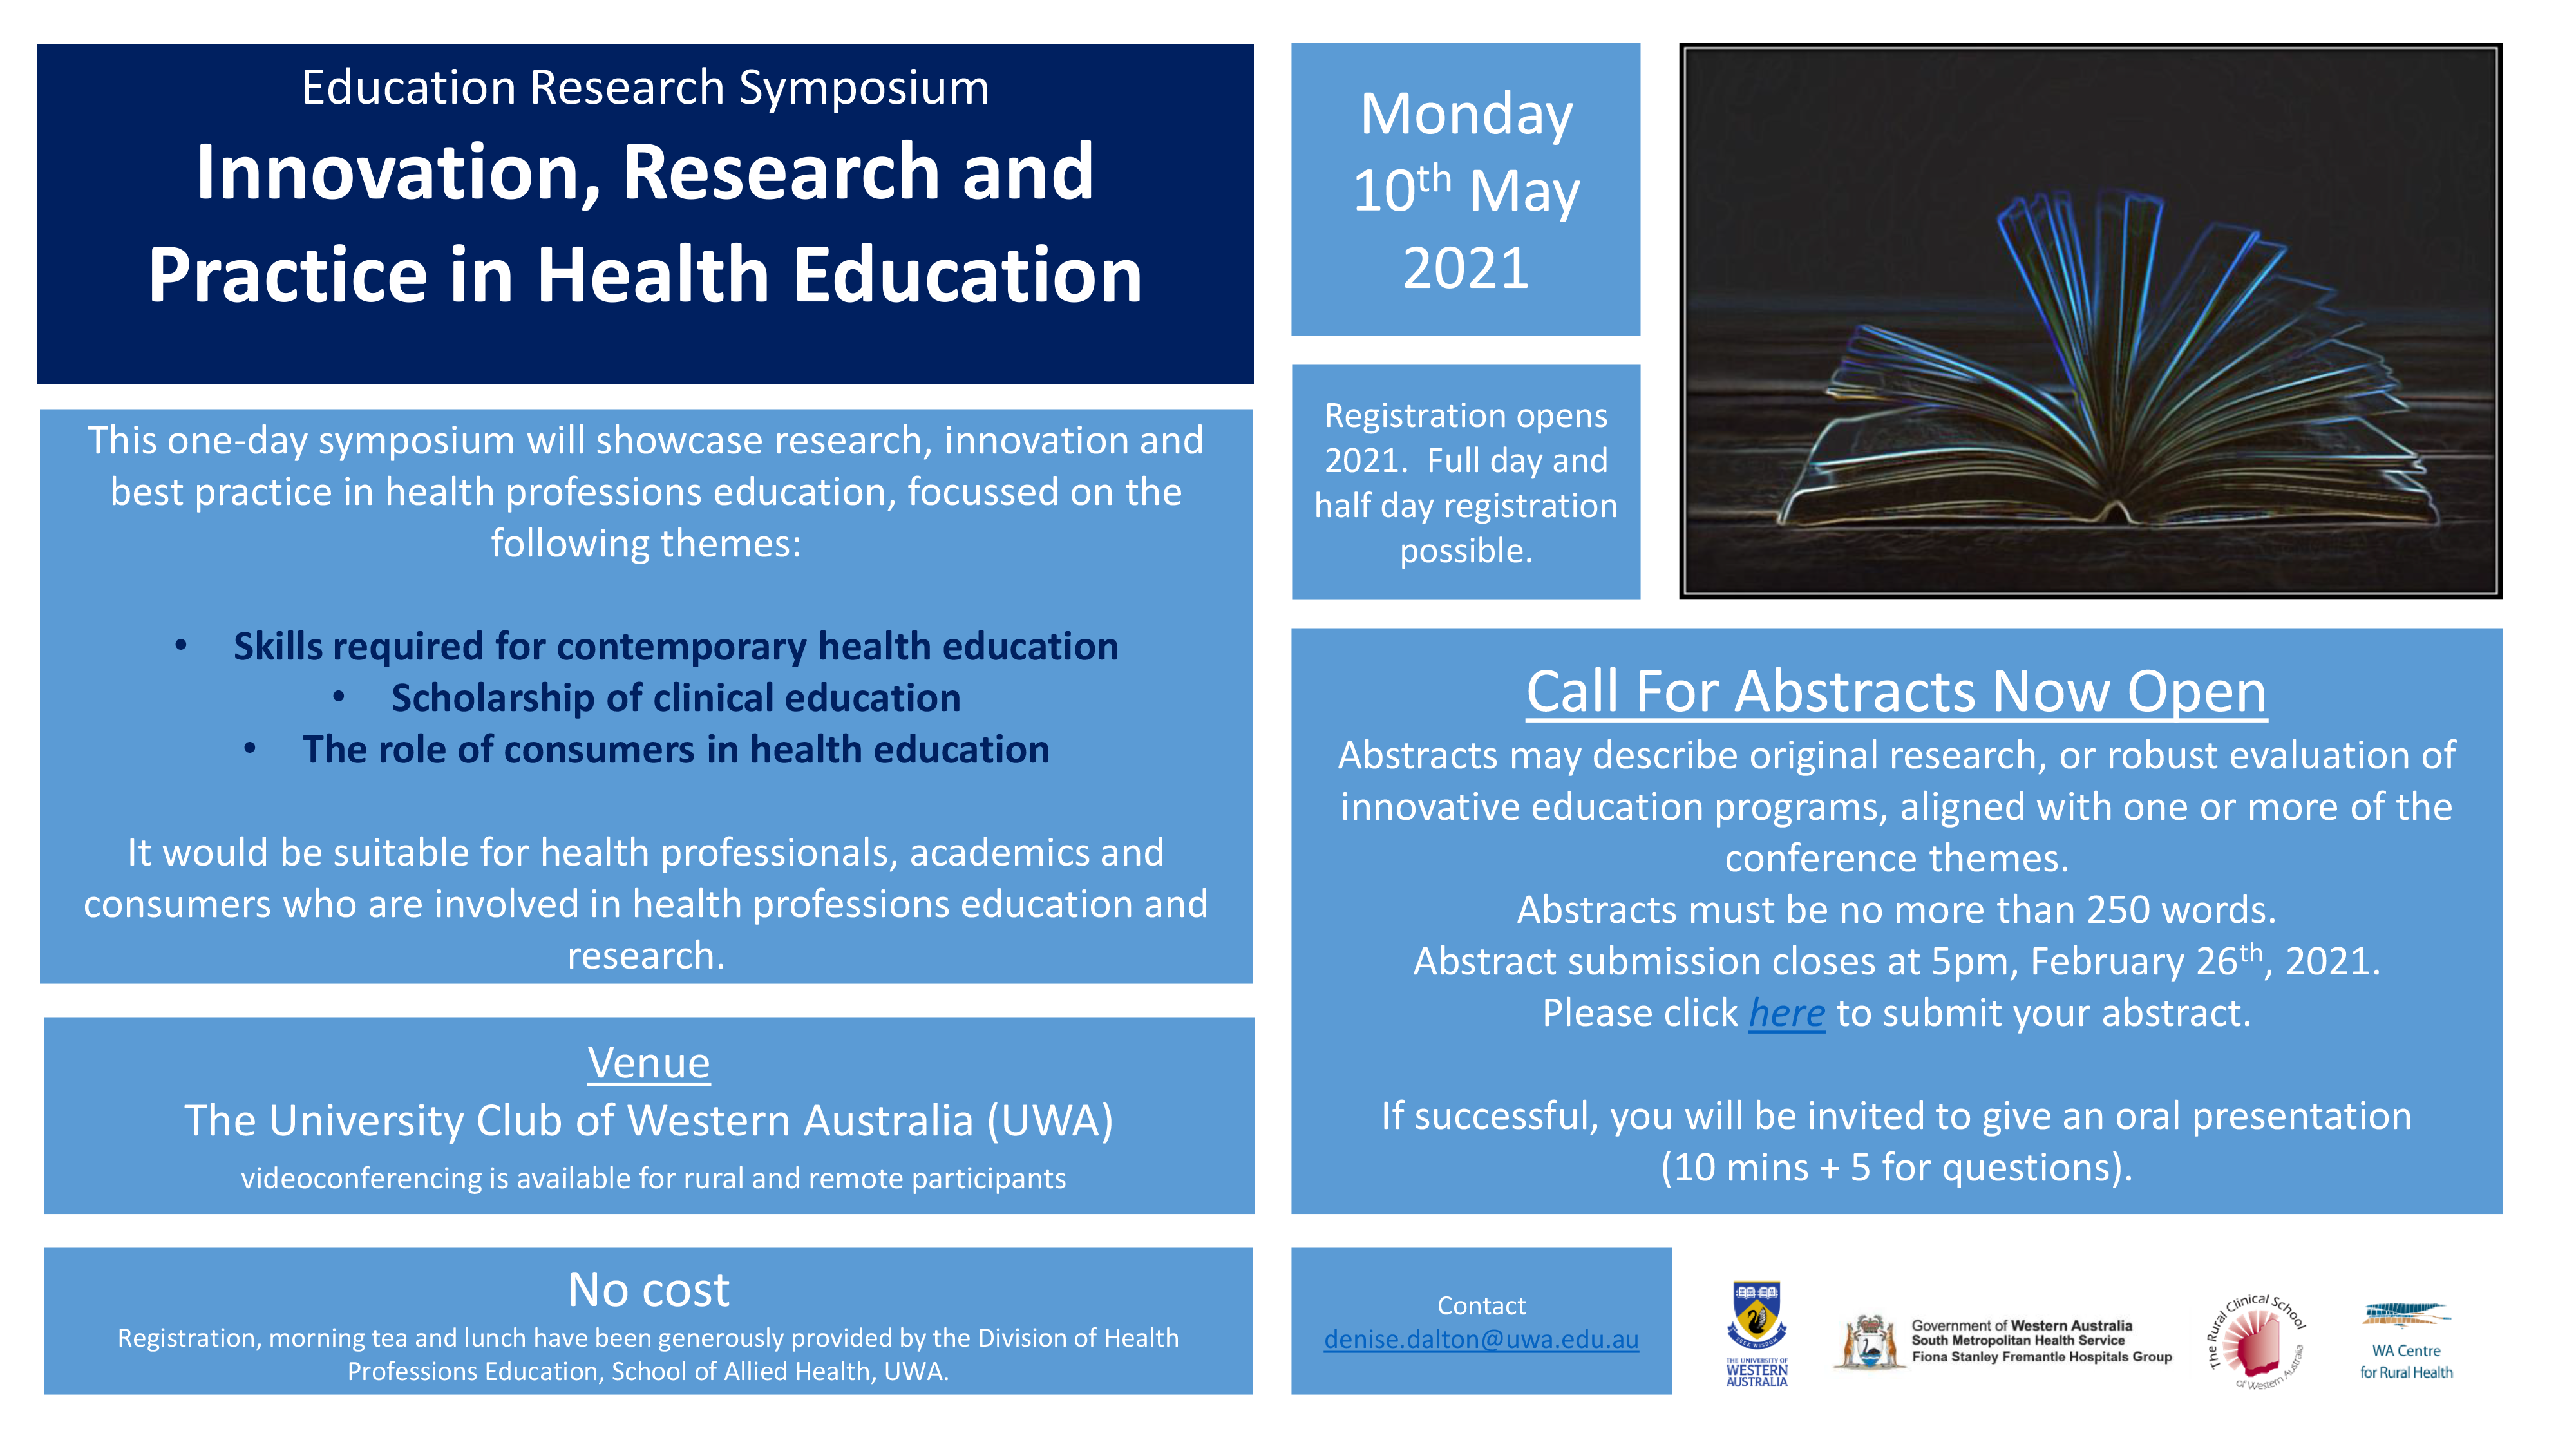 Details for the 2021 Education Research Symposium